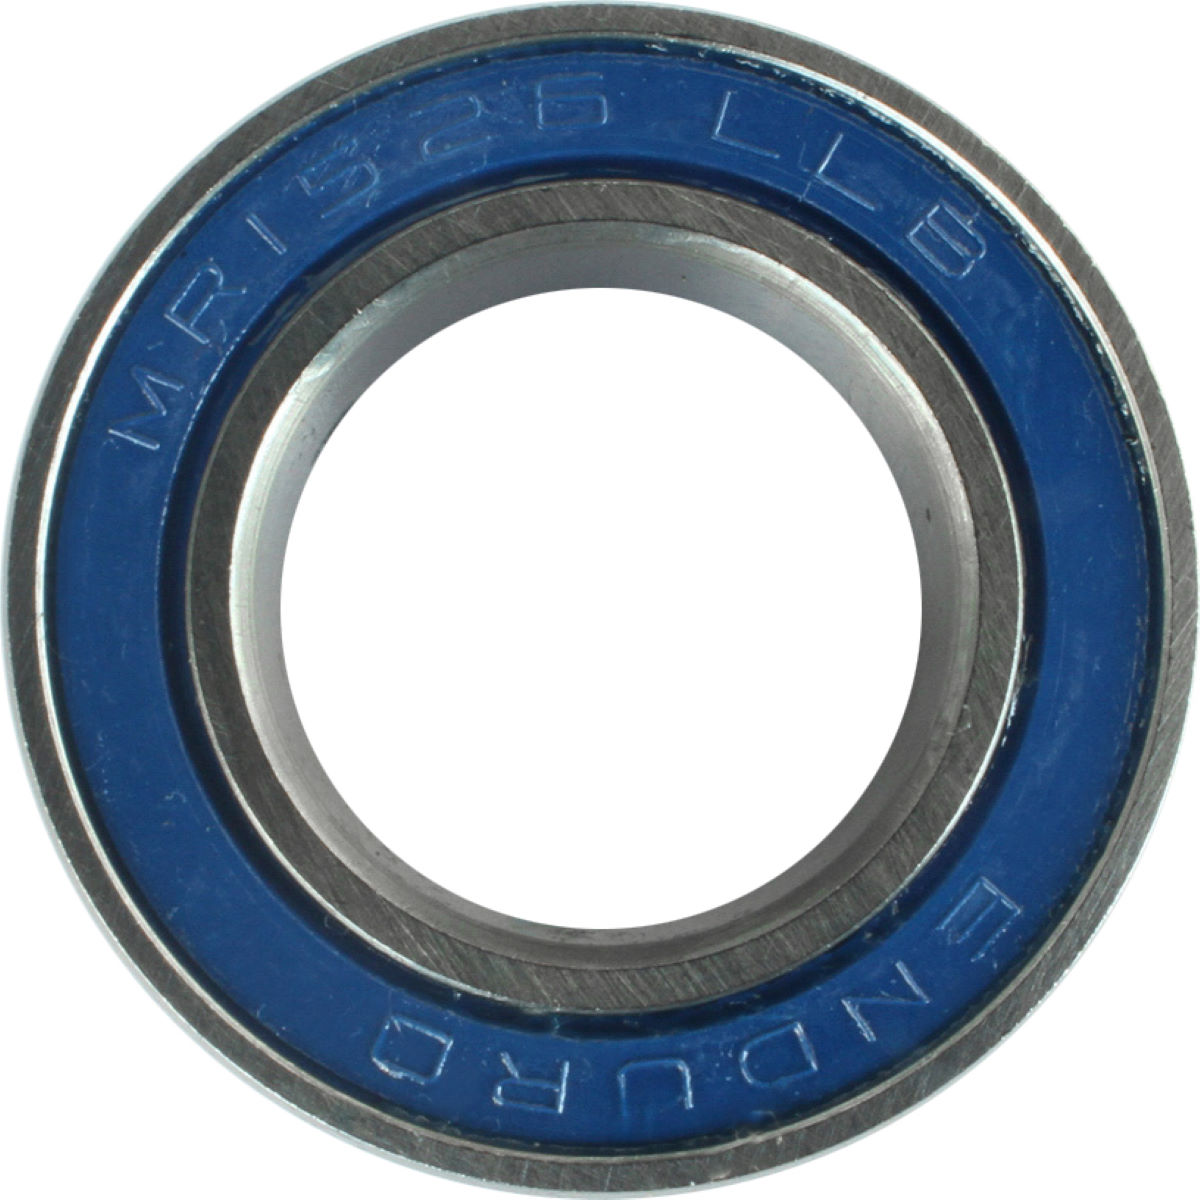 Enduro Bearings Enduro Bearings ABEC3 MR 15267 LLB Bearing   Headsets